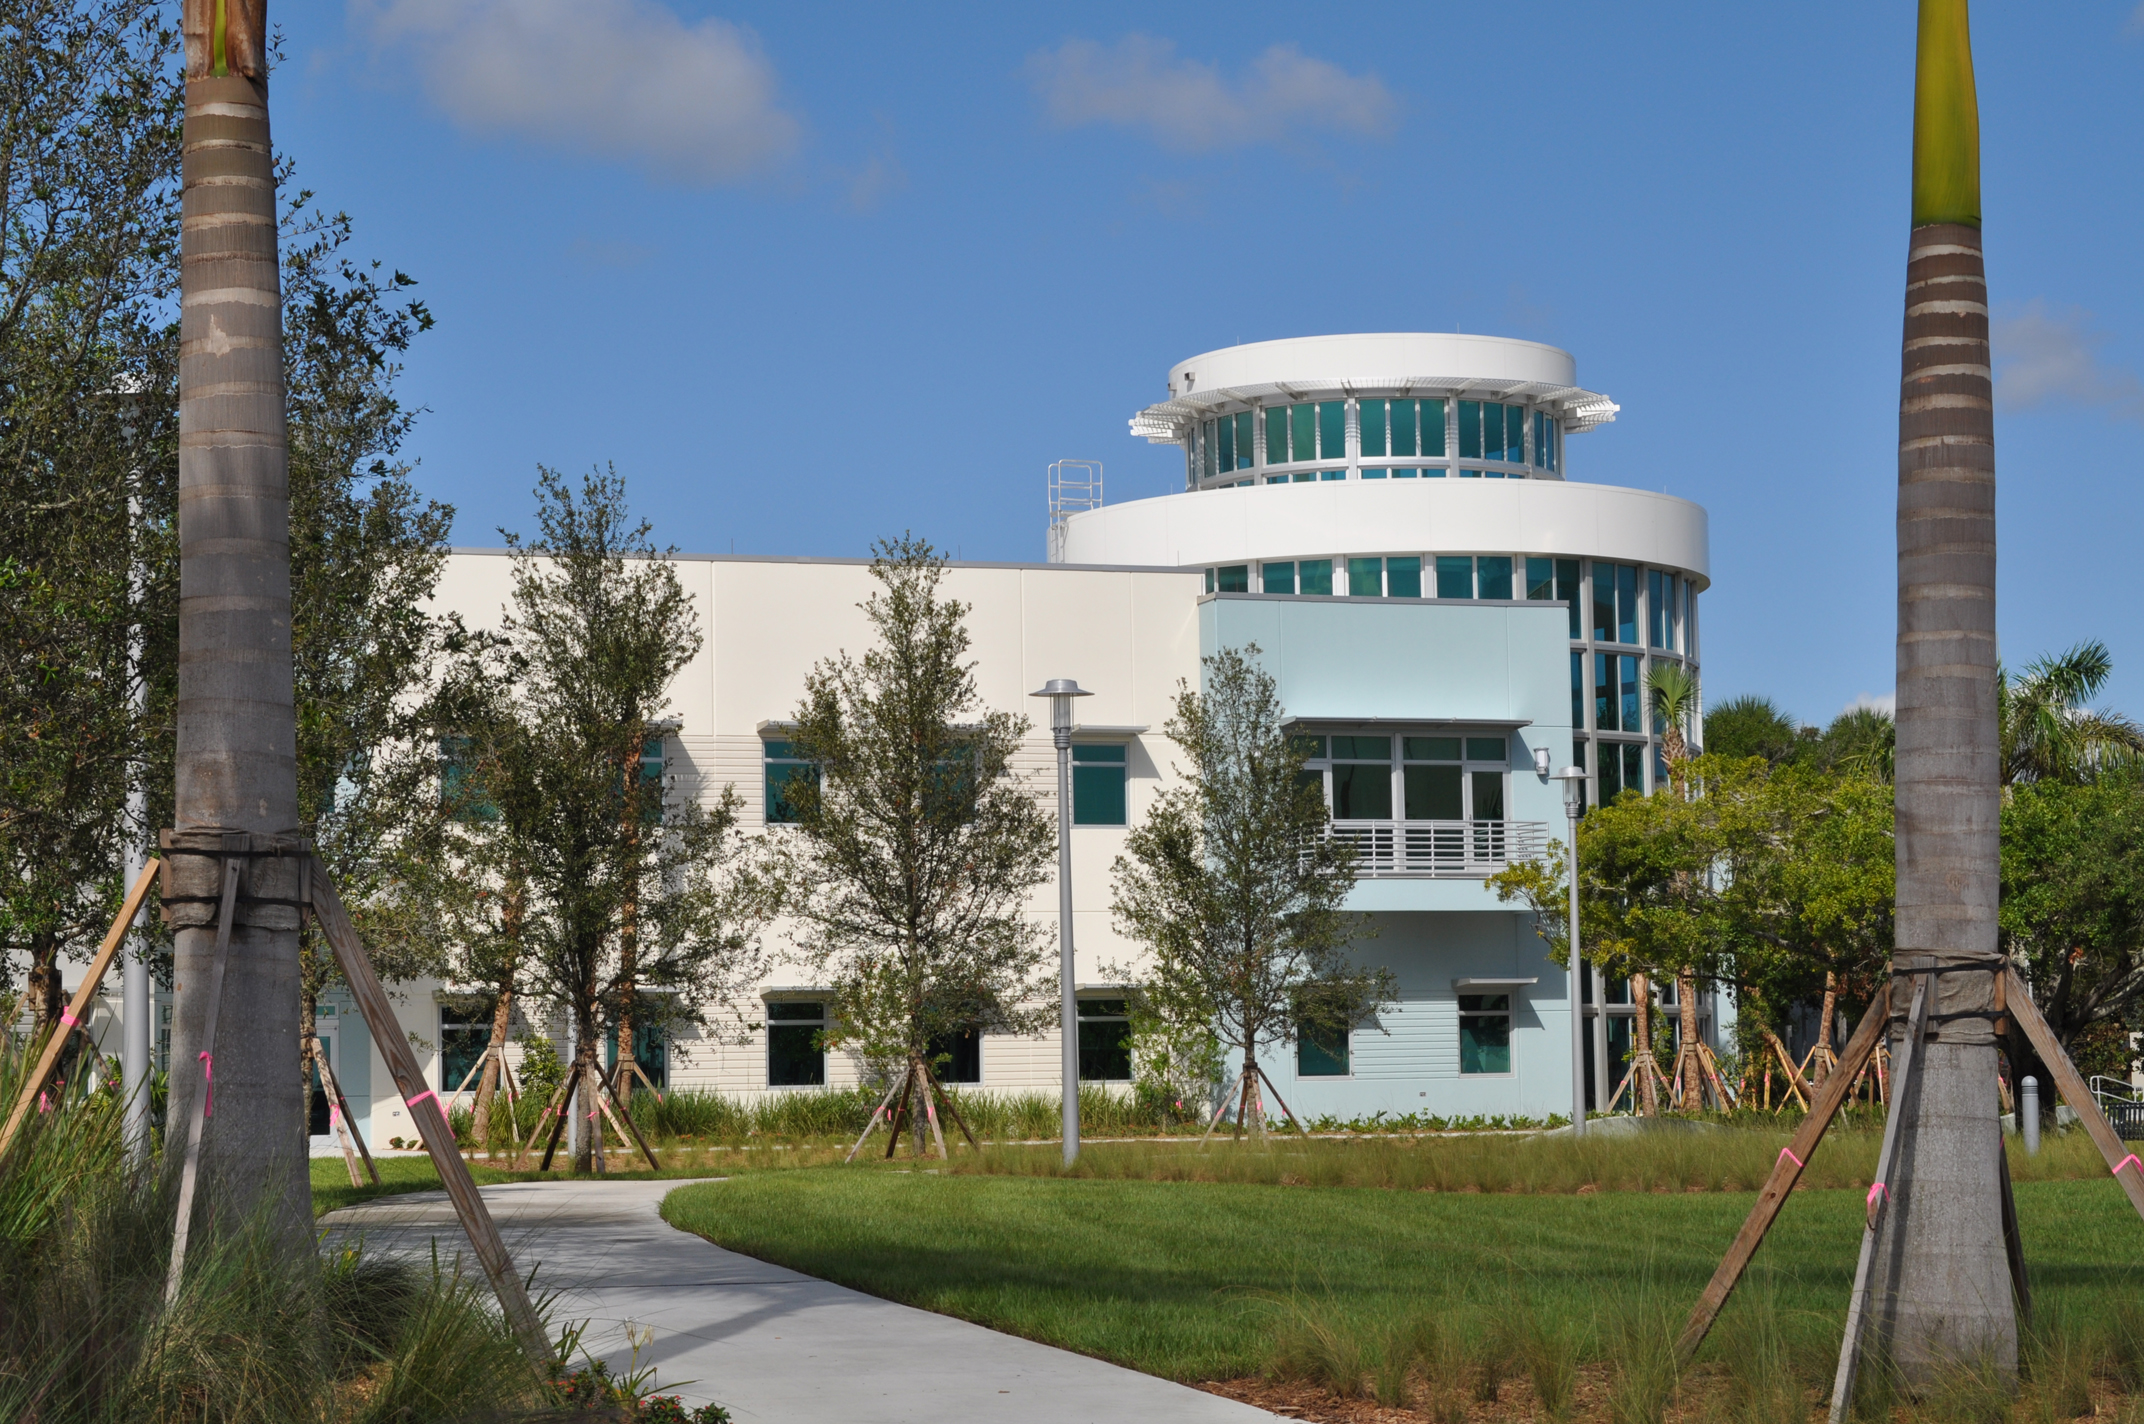 Harbor Branch Oceanographic Institute at FAU Research Laboratory II LEED Silver USGBC Building.JPG